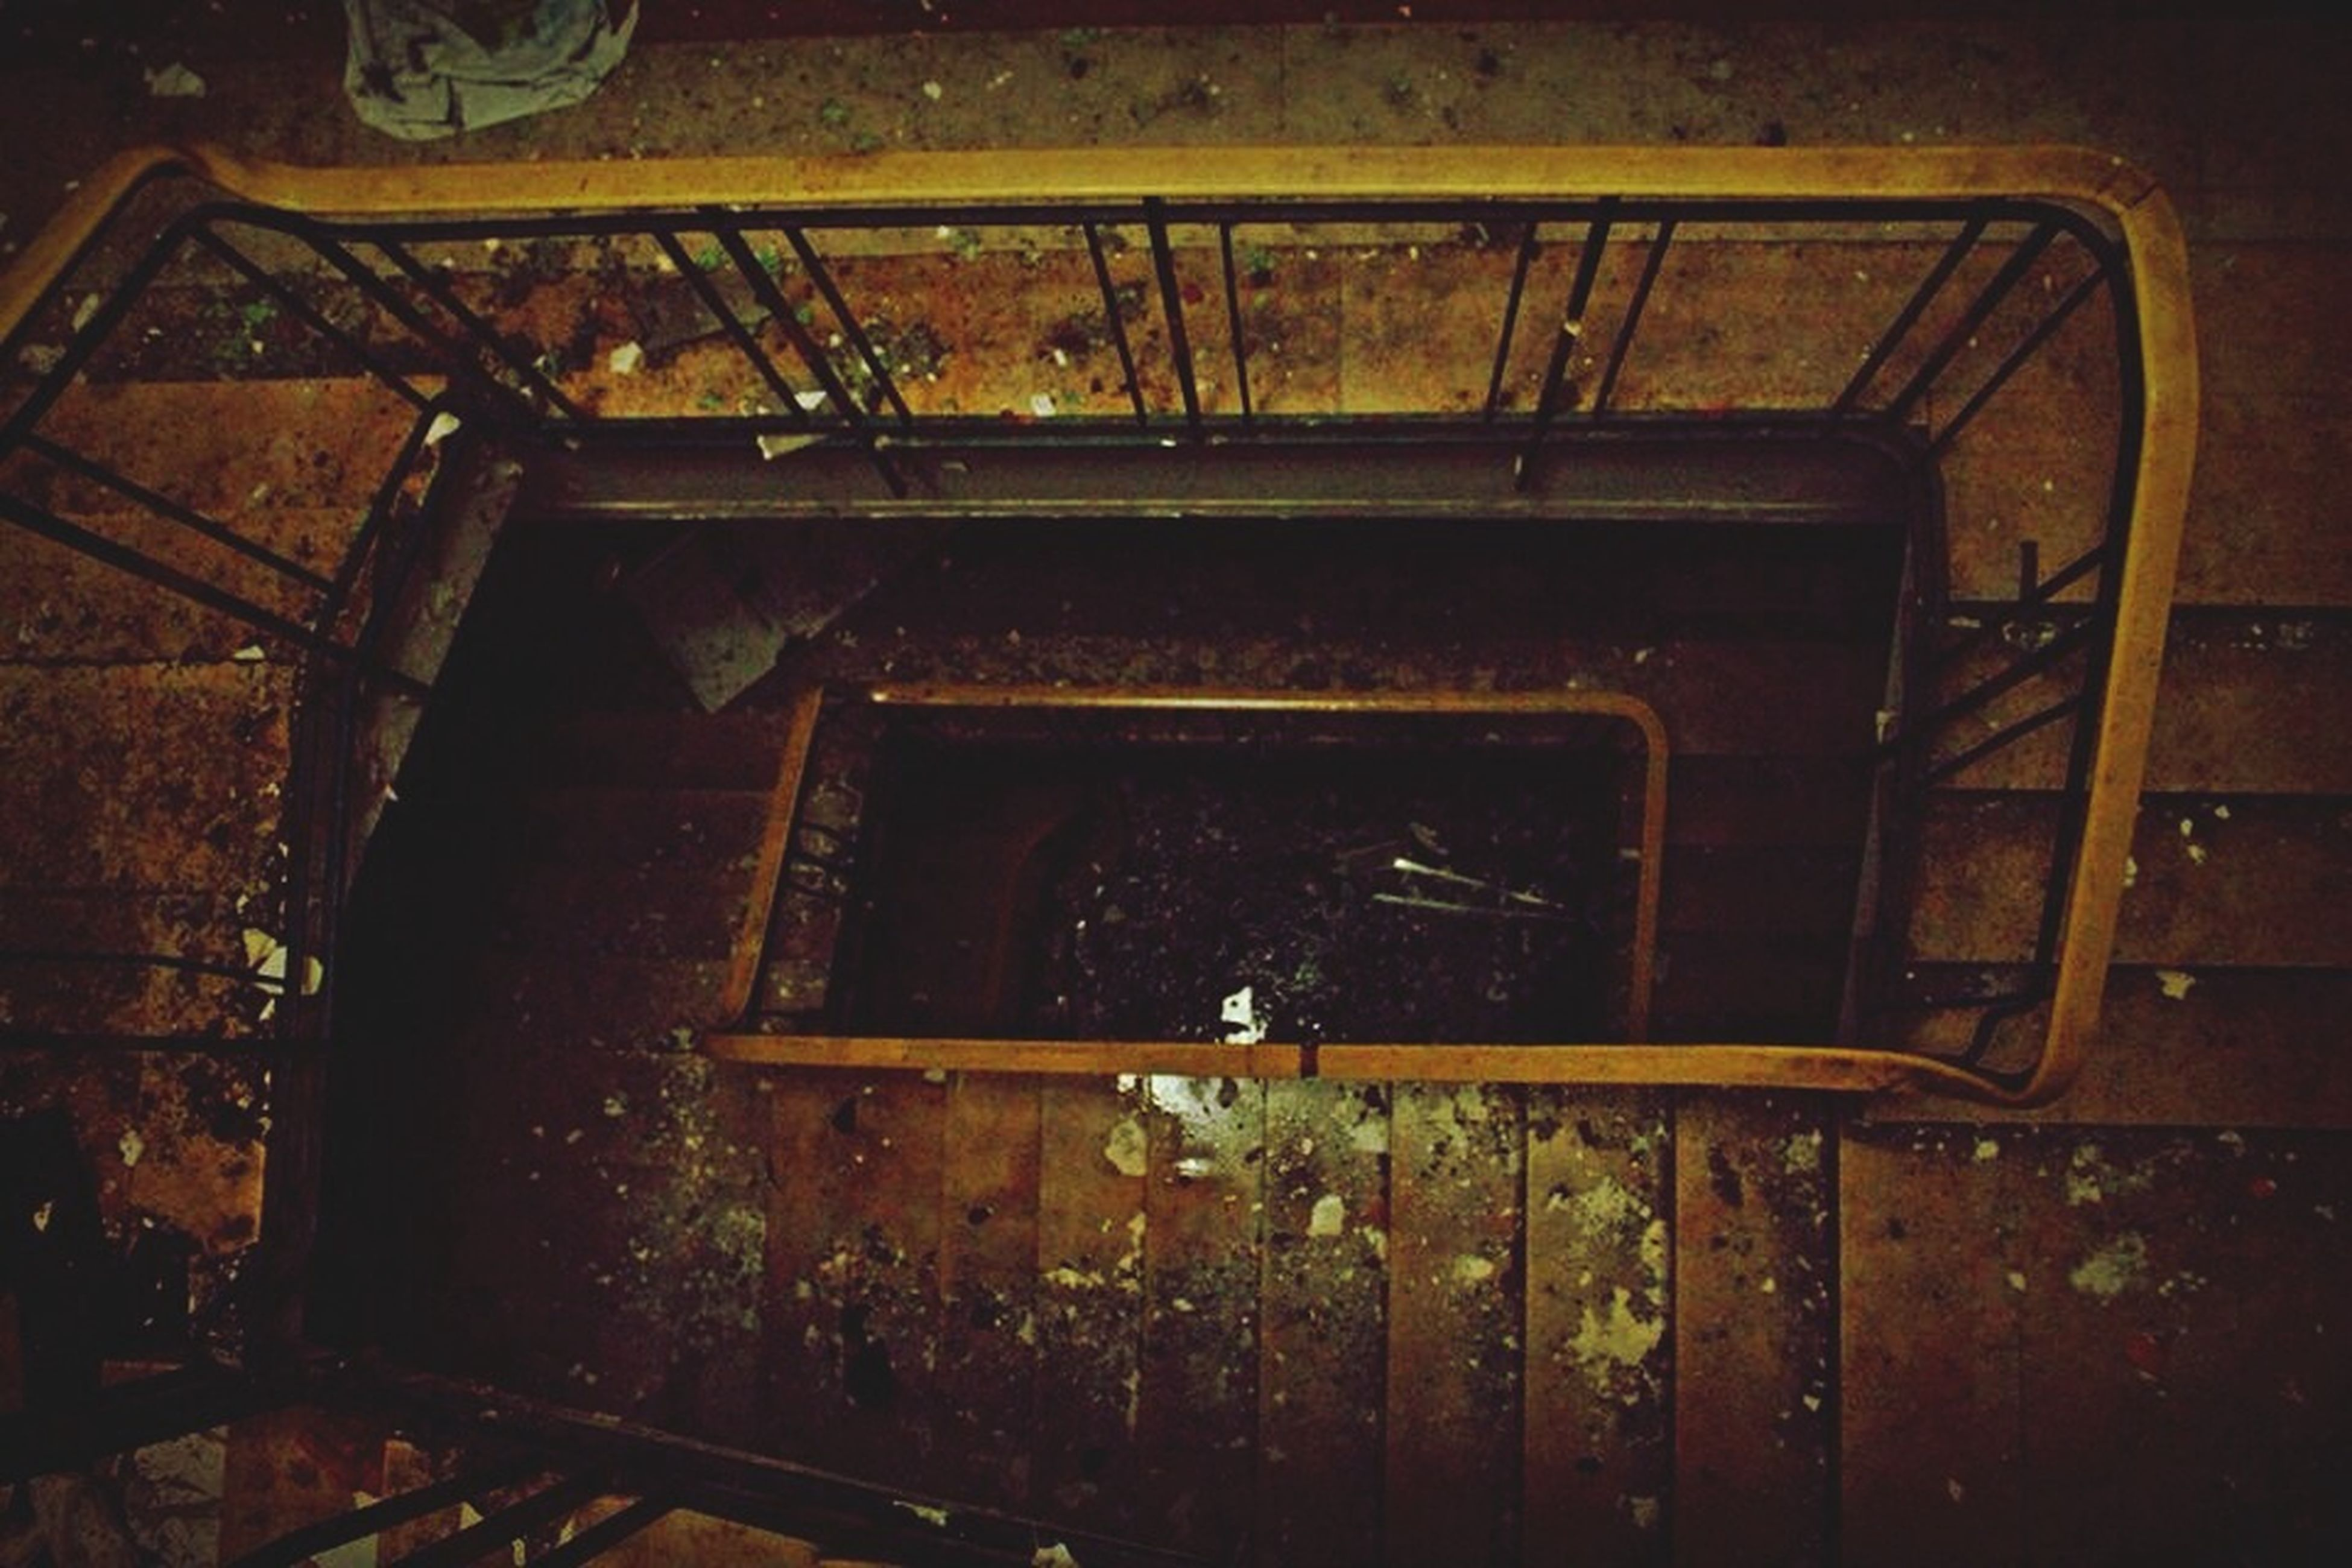 indoors, metal, old, close-up, old-fashioned, rusty, wood - material, door, built structure, technology, high angle view, metallic, abandoned, no people, architecture, obsolete, day, house, run-down, damaged